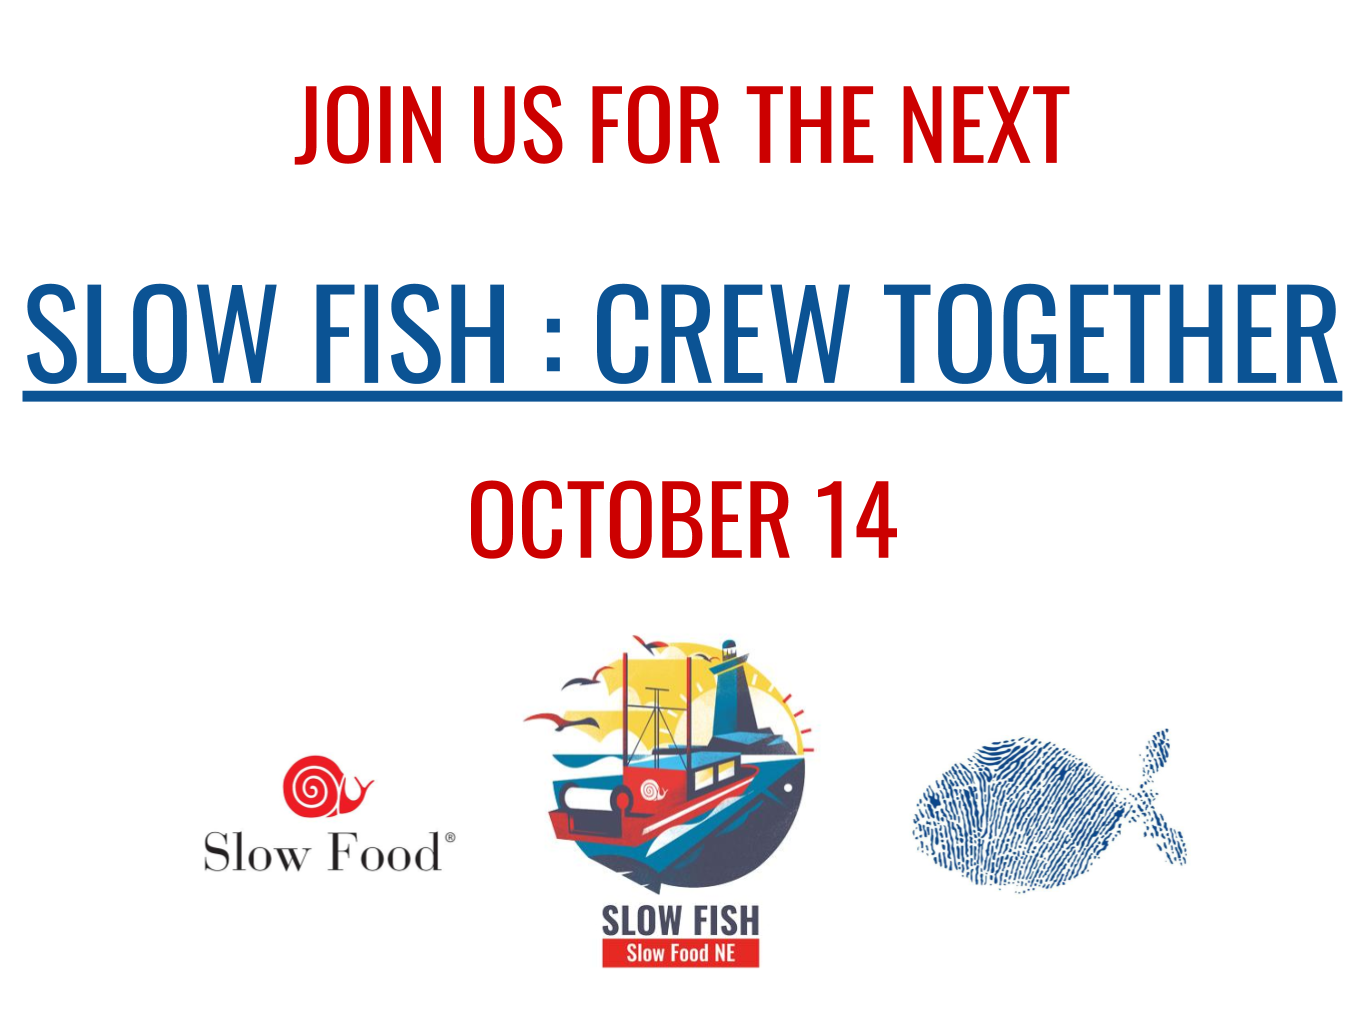 Slow Fish : Crew Together